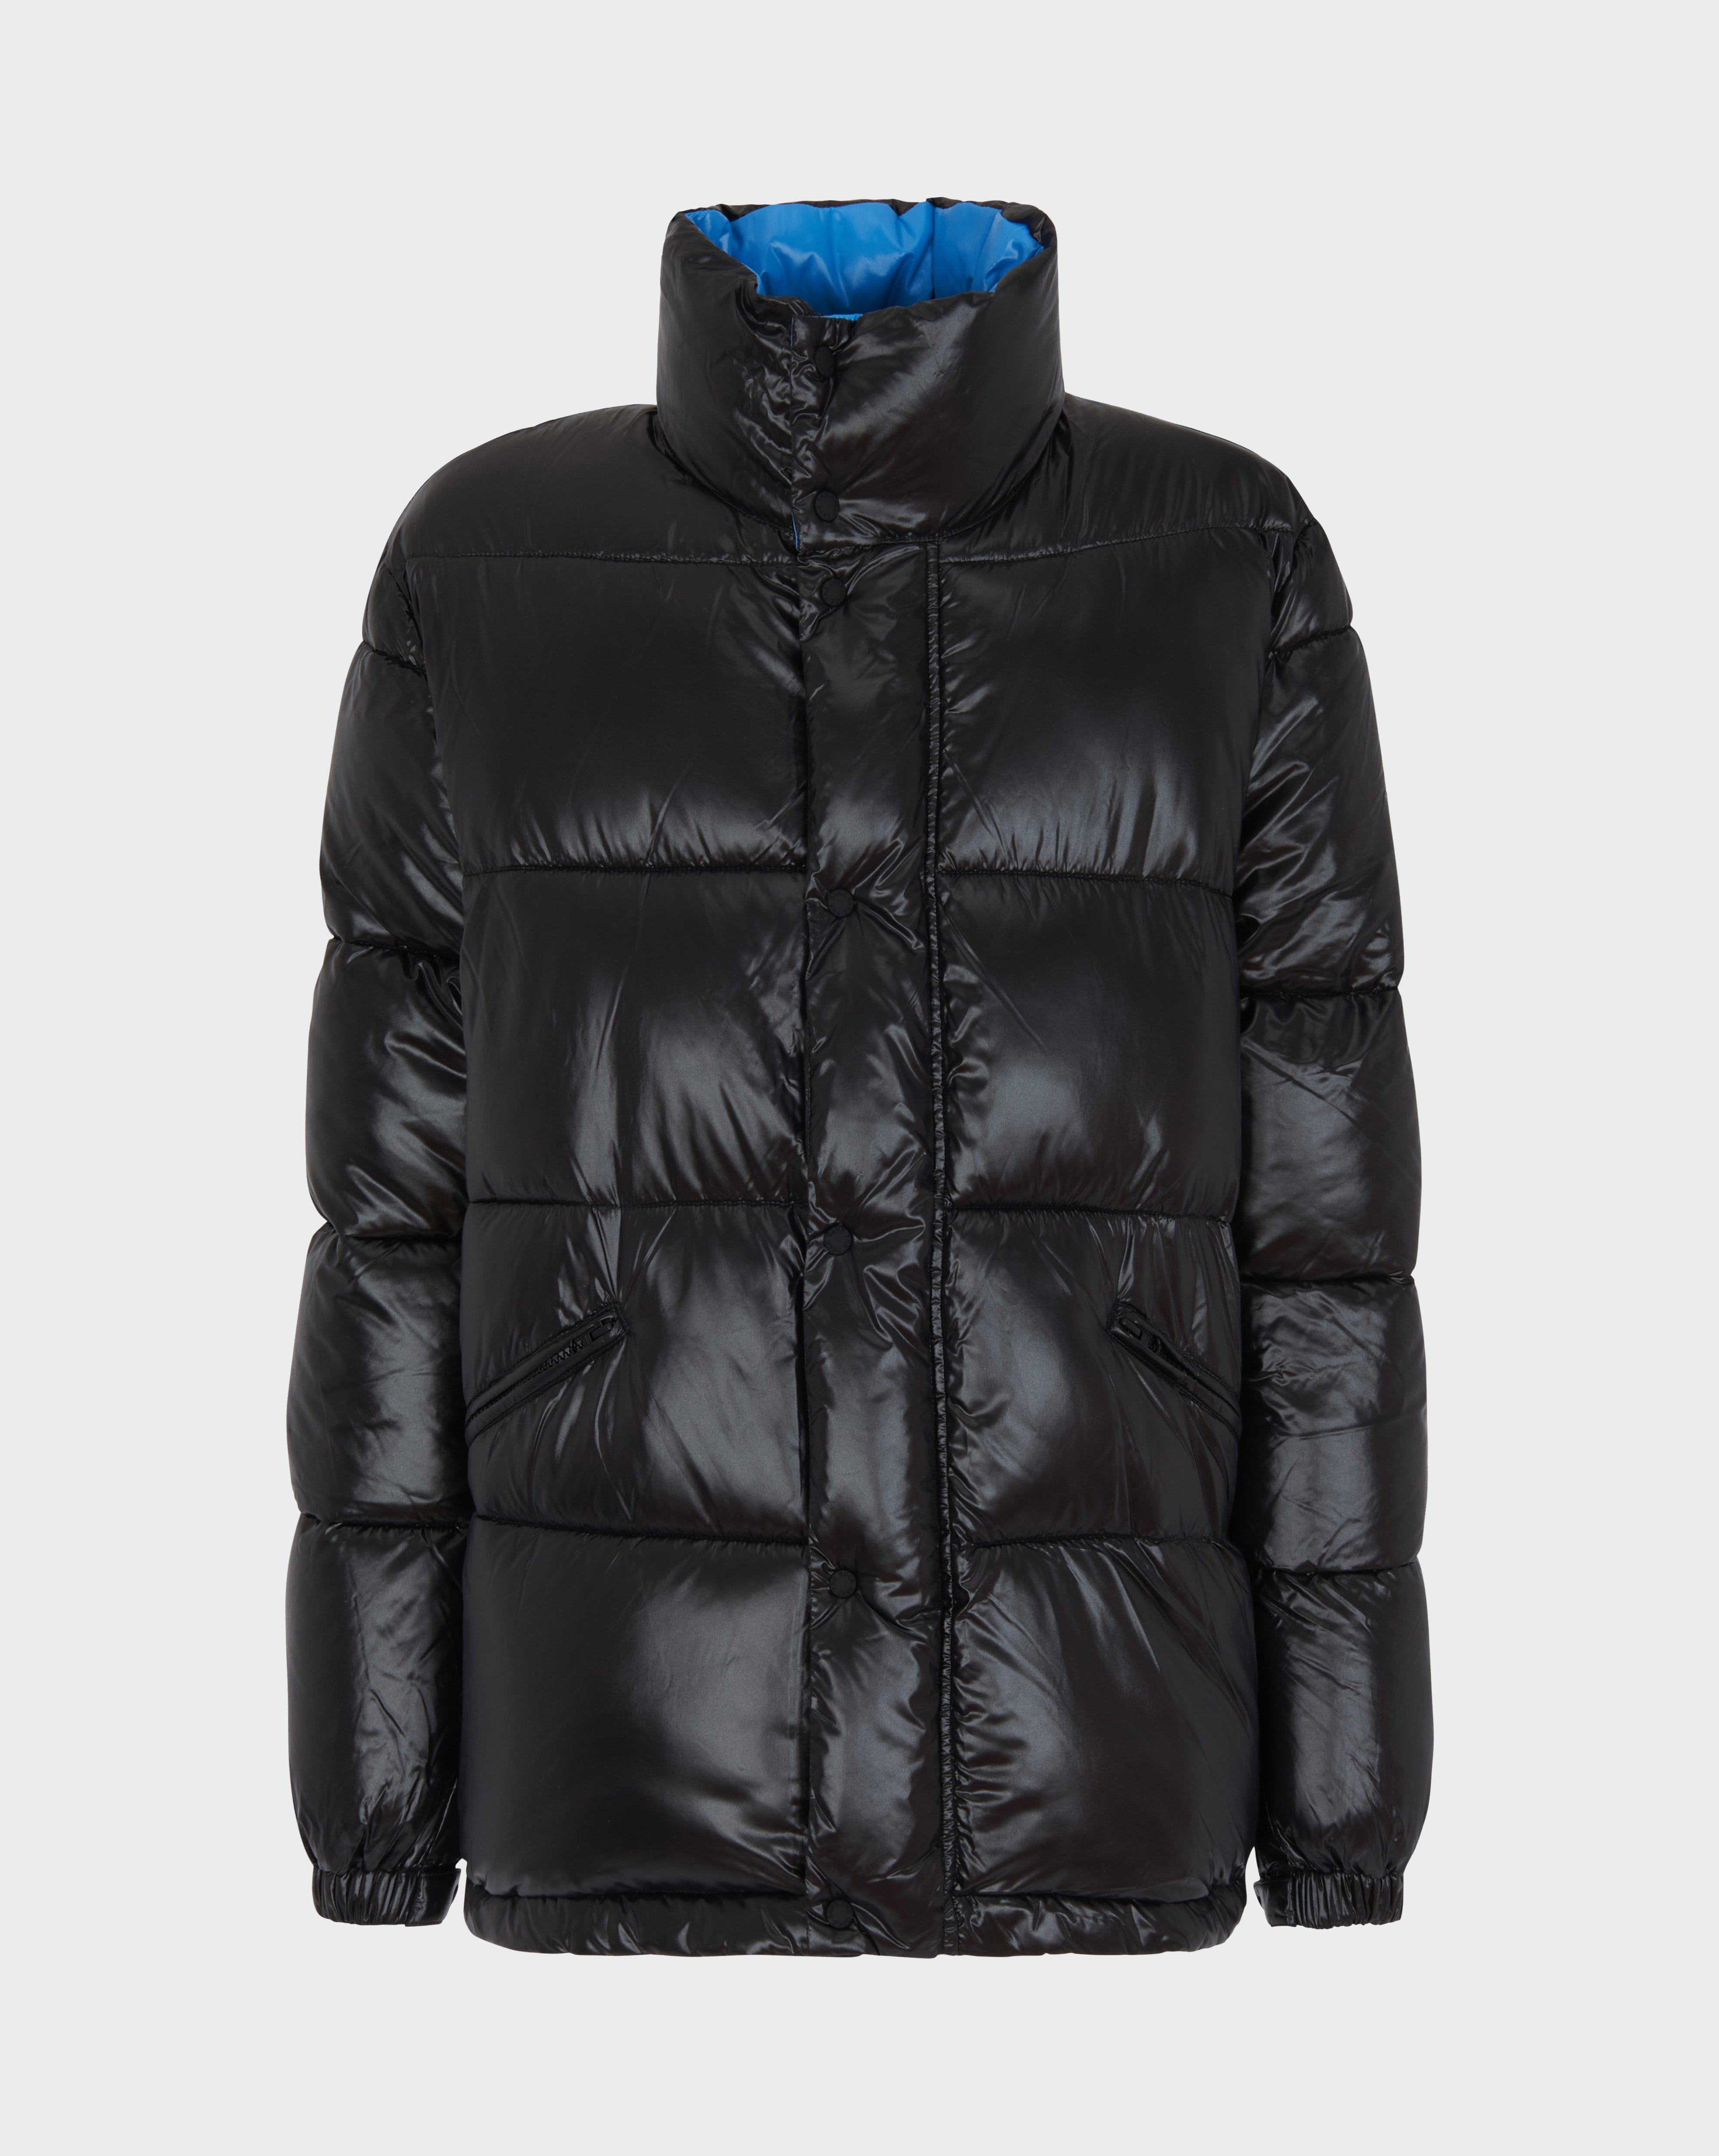 Mens Disney Sleek Jacket in Black